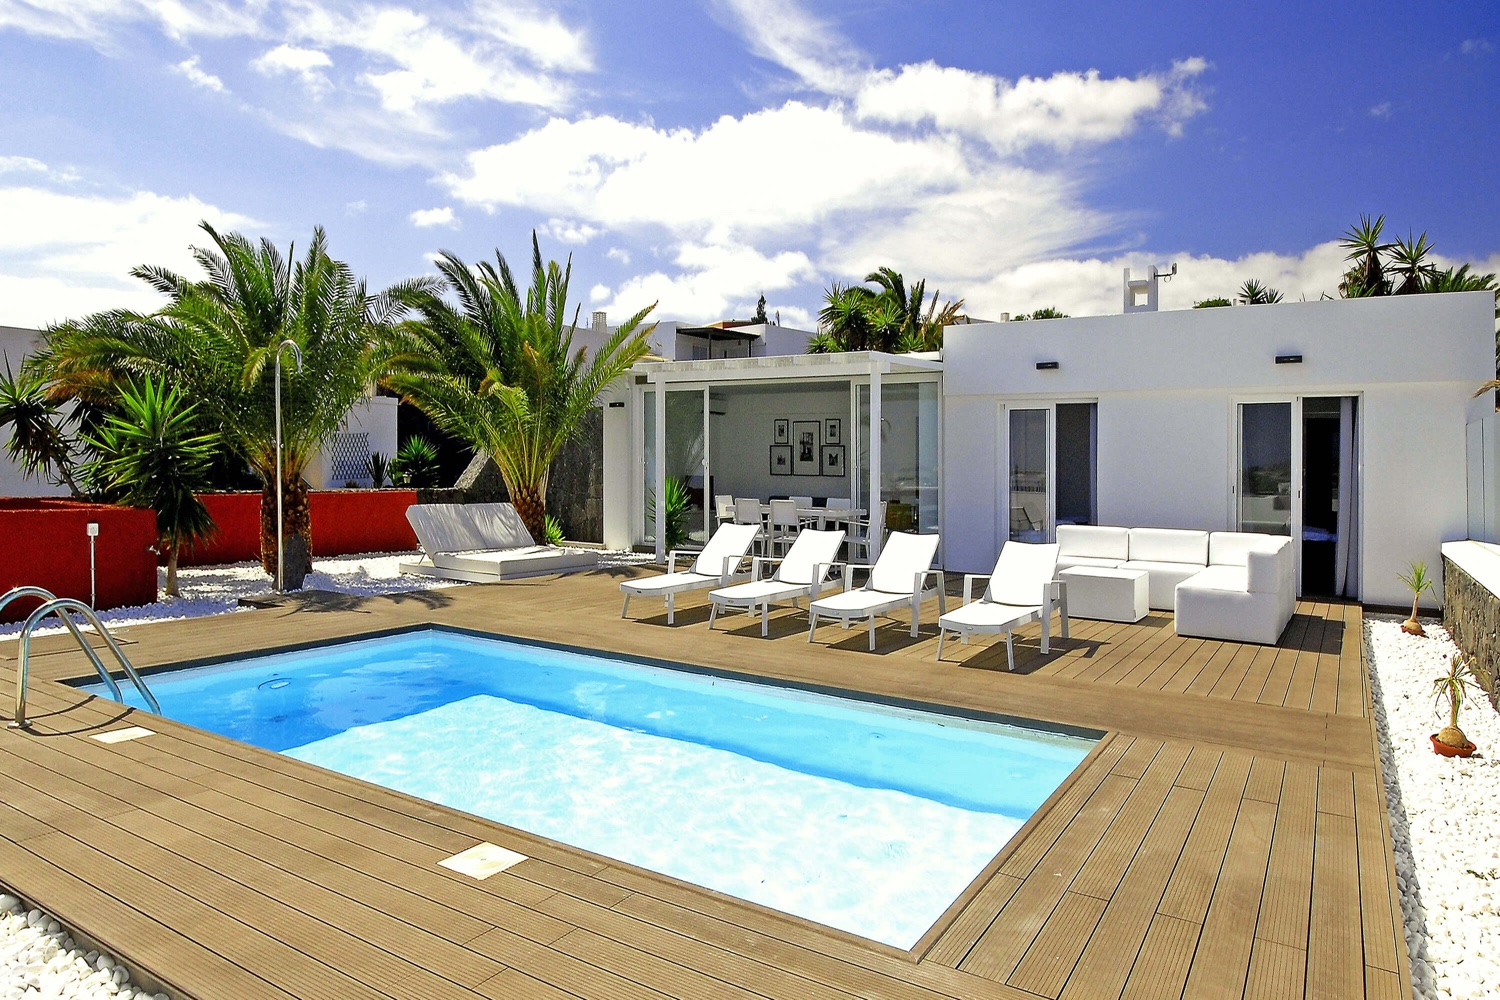 Beautiful 3 bedroom villa with views of the sea and Fuerteventura, with private heatable pool and near the famous Papagayo beaches